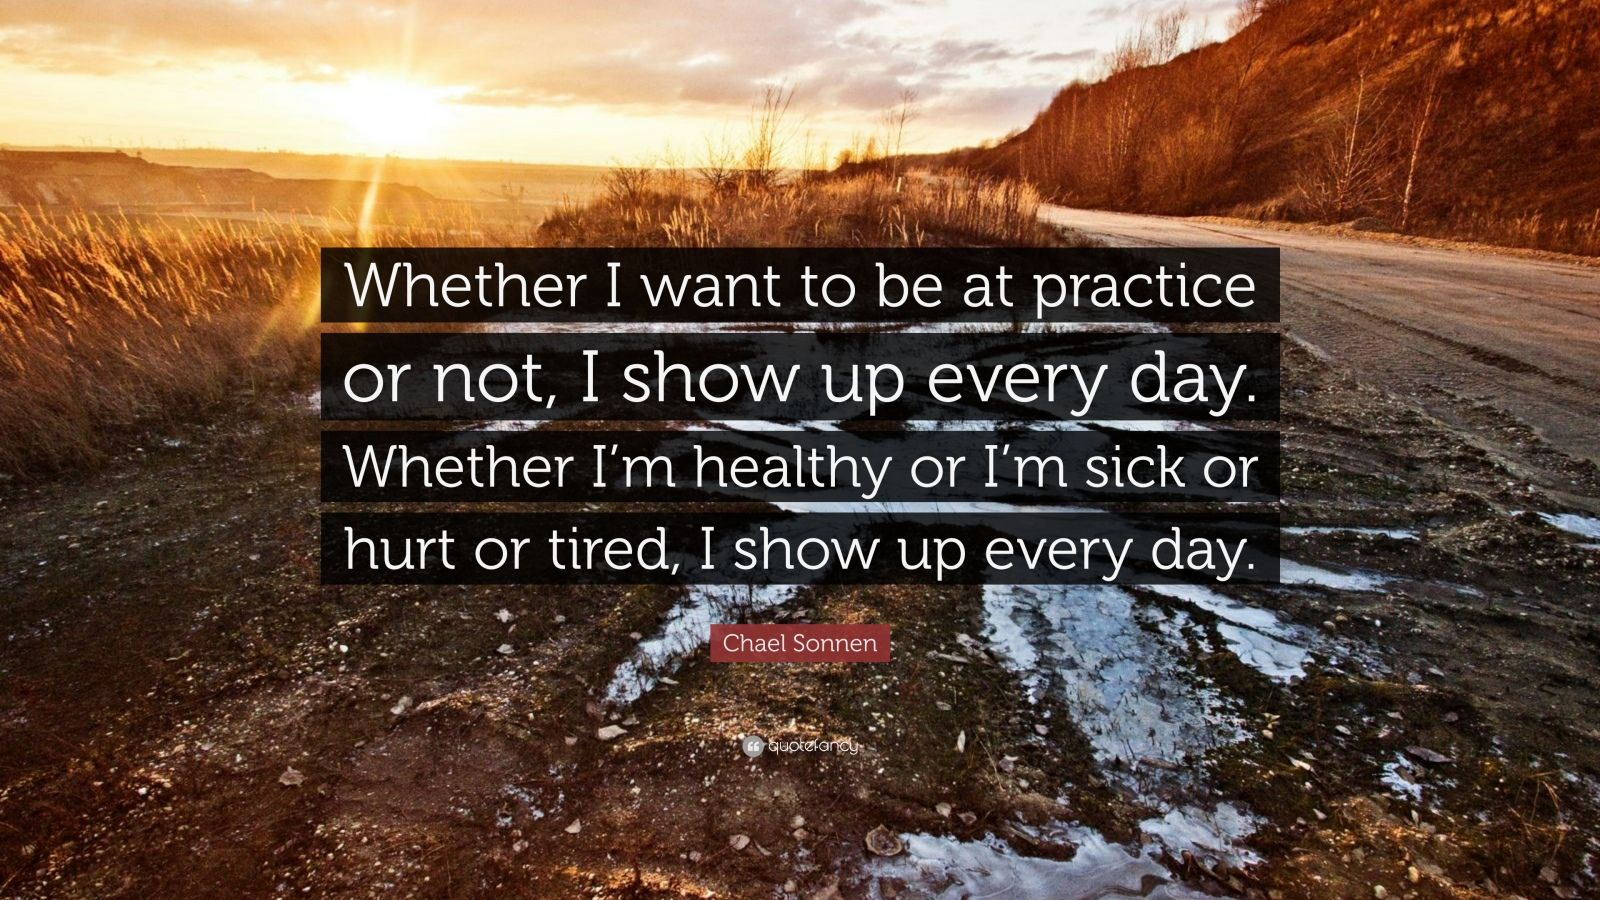 "Chael Sonnen Quote: ""Whether I want to be at practice or not, I show up every day. Whether I'm healthy or I'm sick or hurt or tired, I show up every day."""